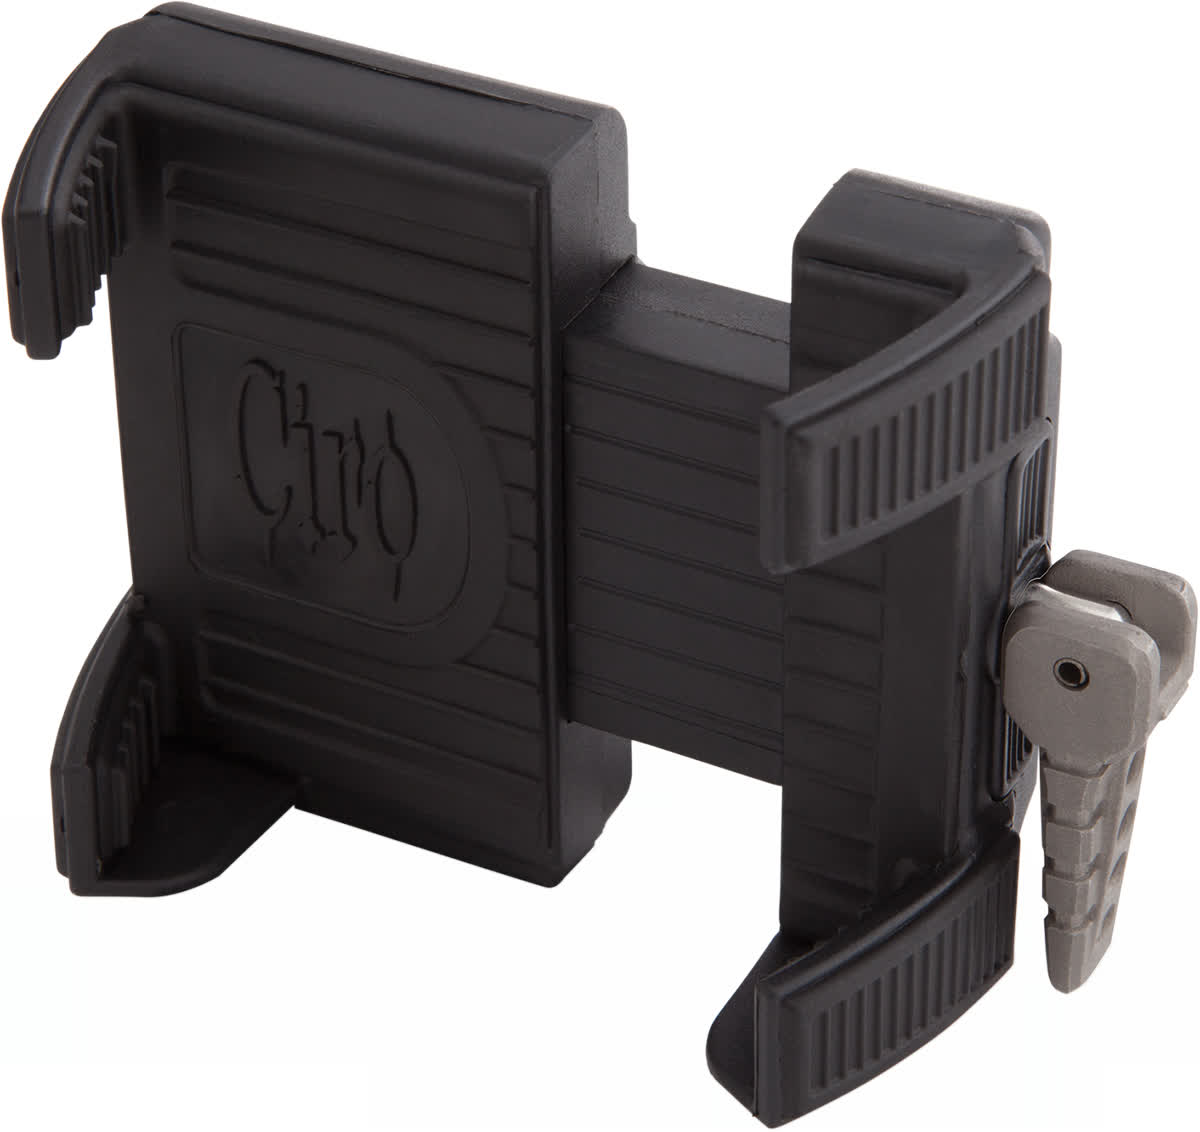 Ciro 50001 Smartphone Holder without Charger  No Mount